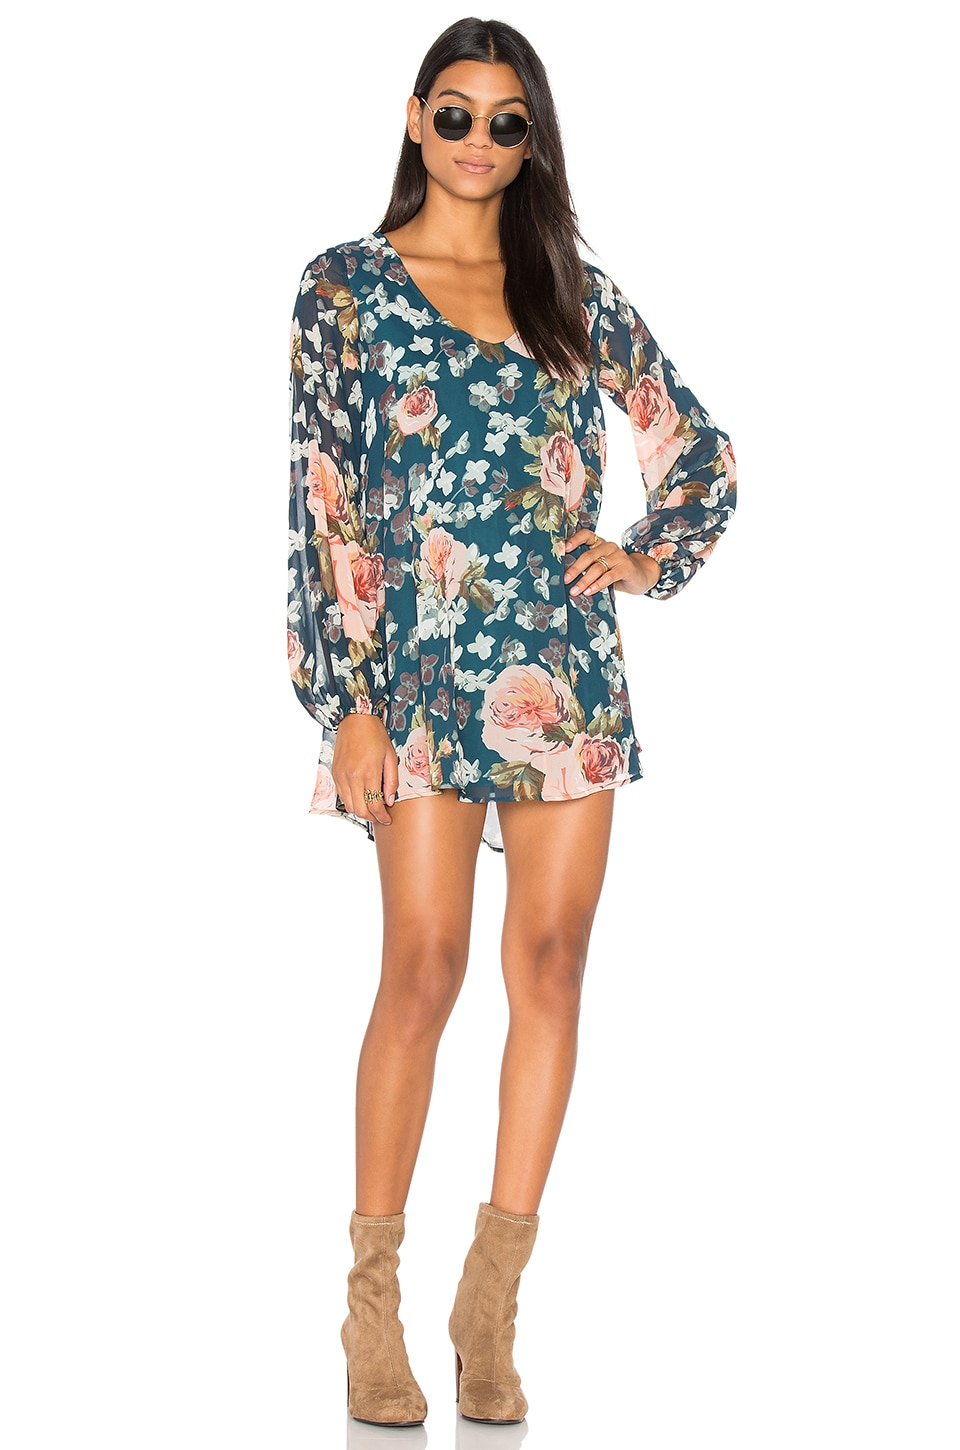 Donna Michelle Tunic Dress in Fall by Show Me Your Mumu